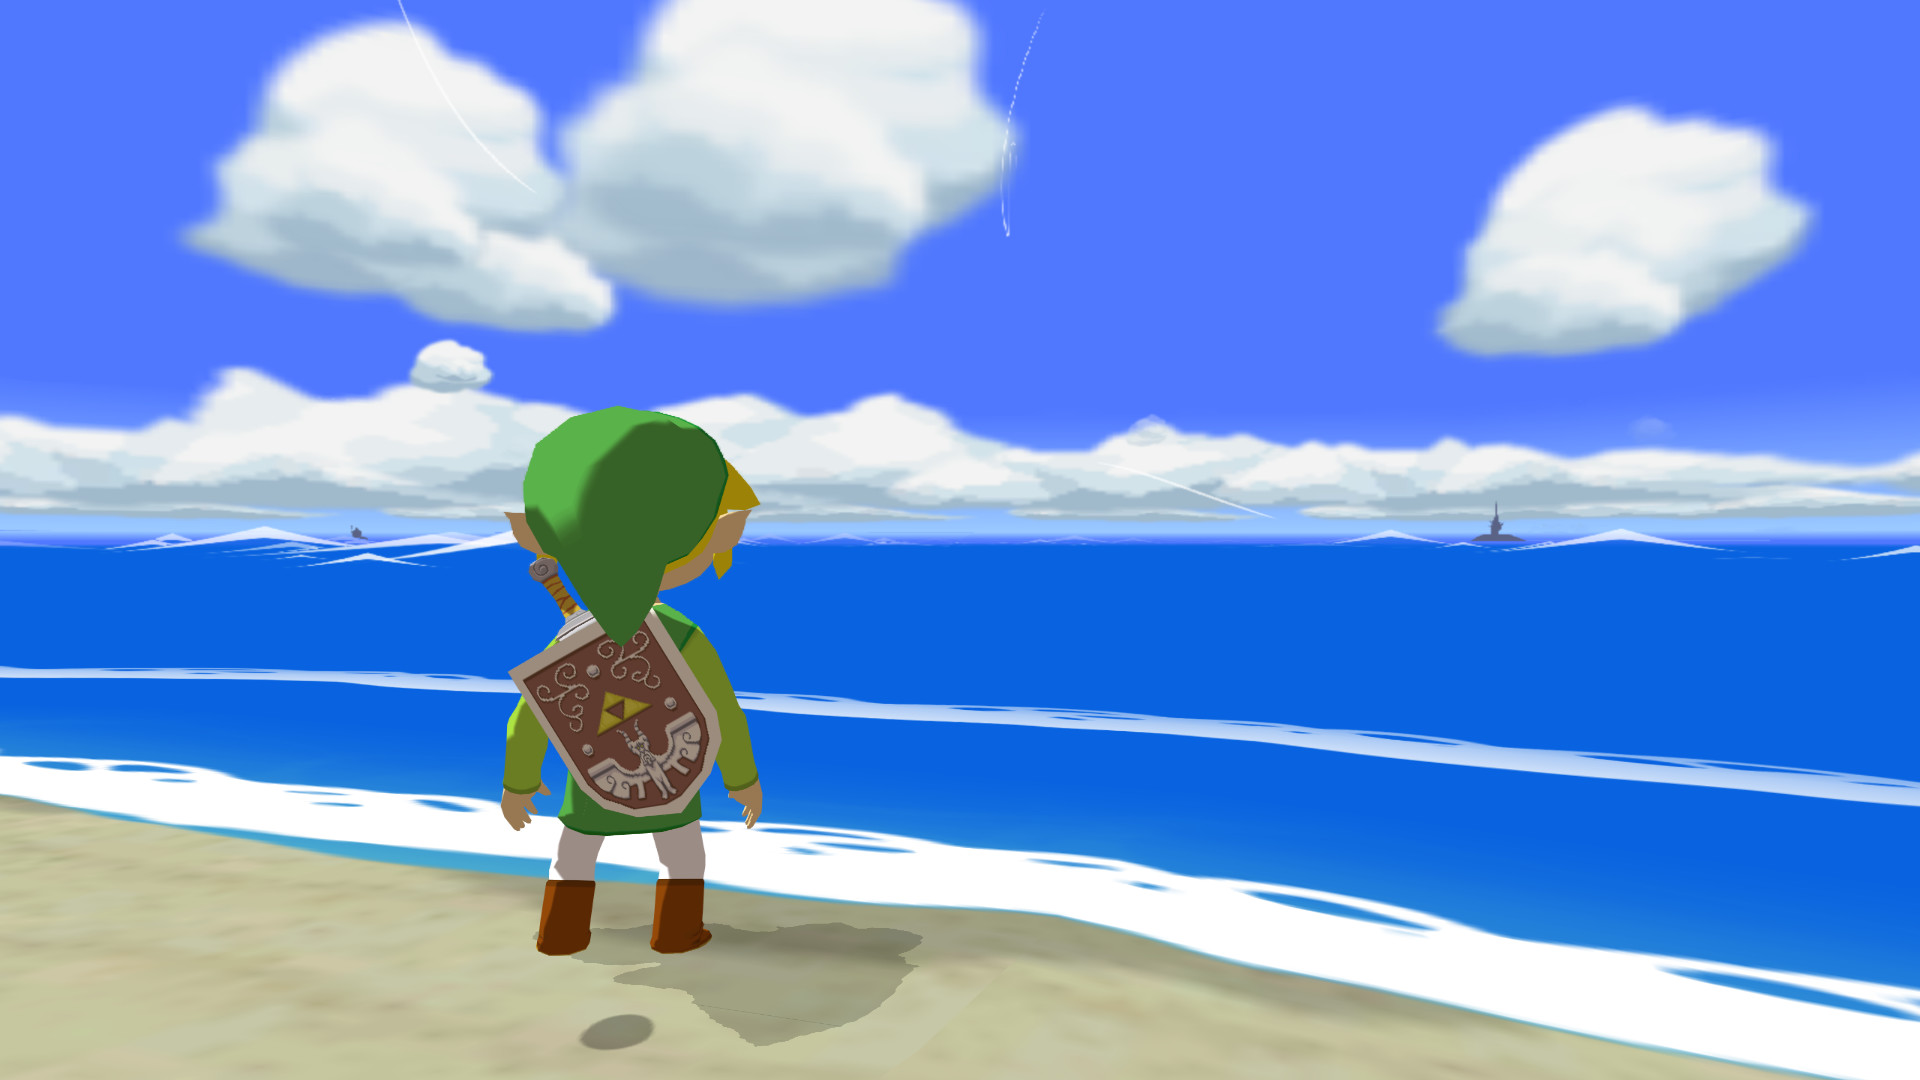 Legend of Zelda : Wind Waker 2 – The Reason for Cancellation